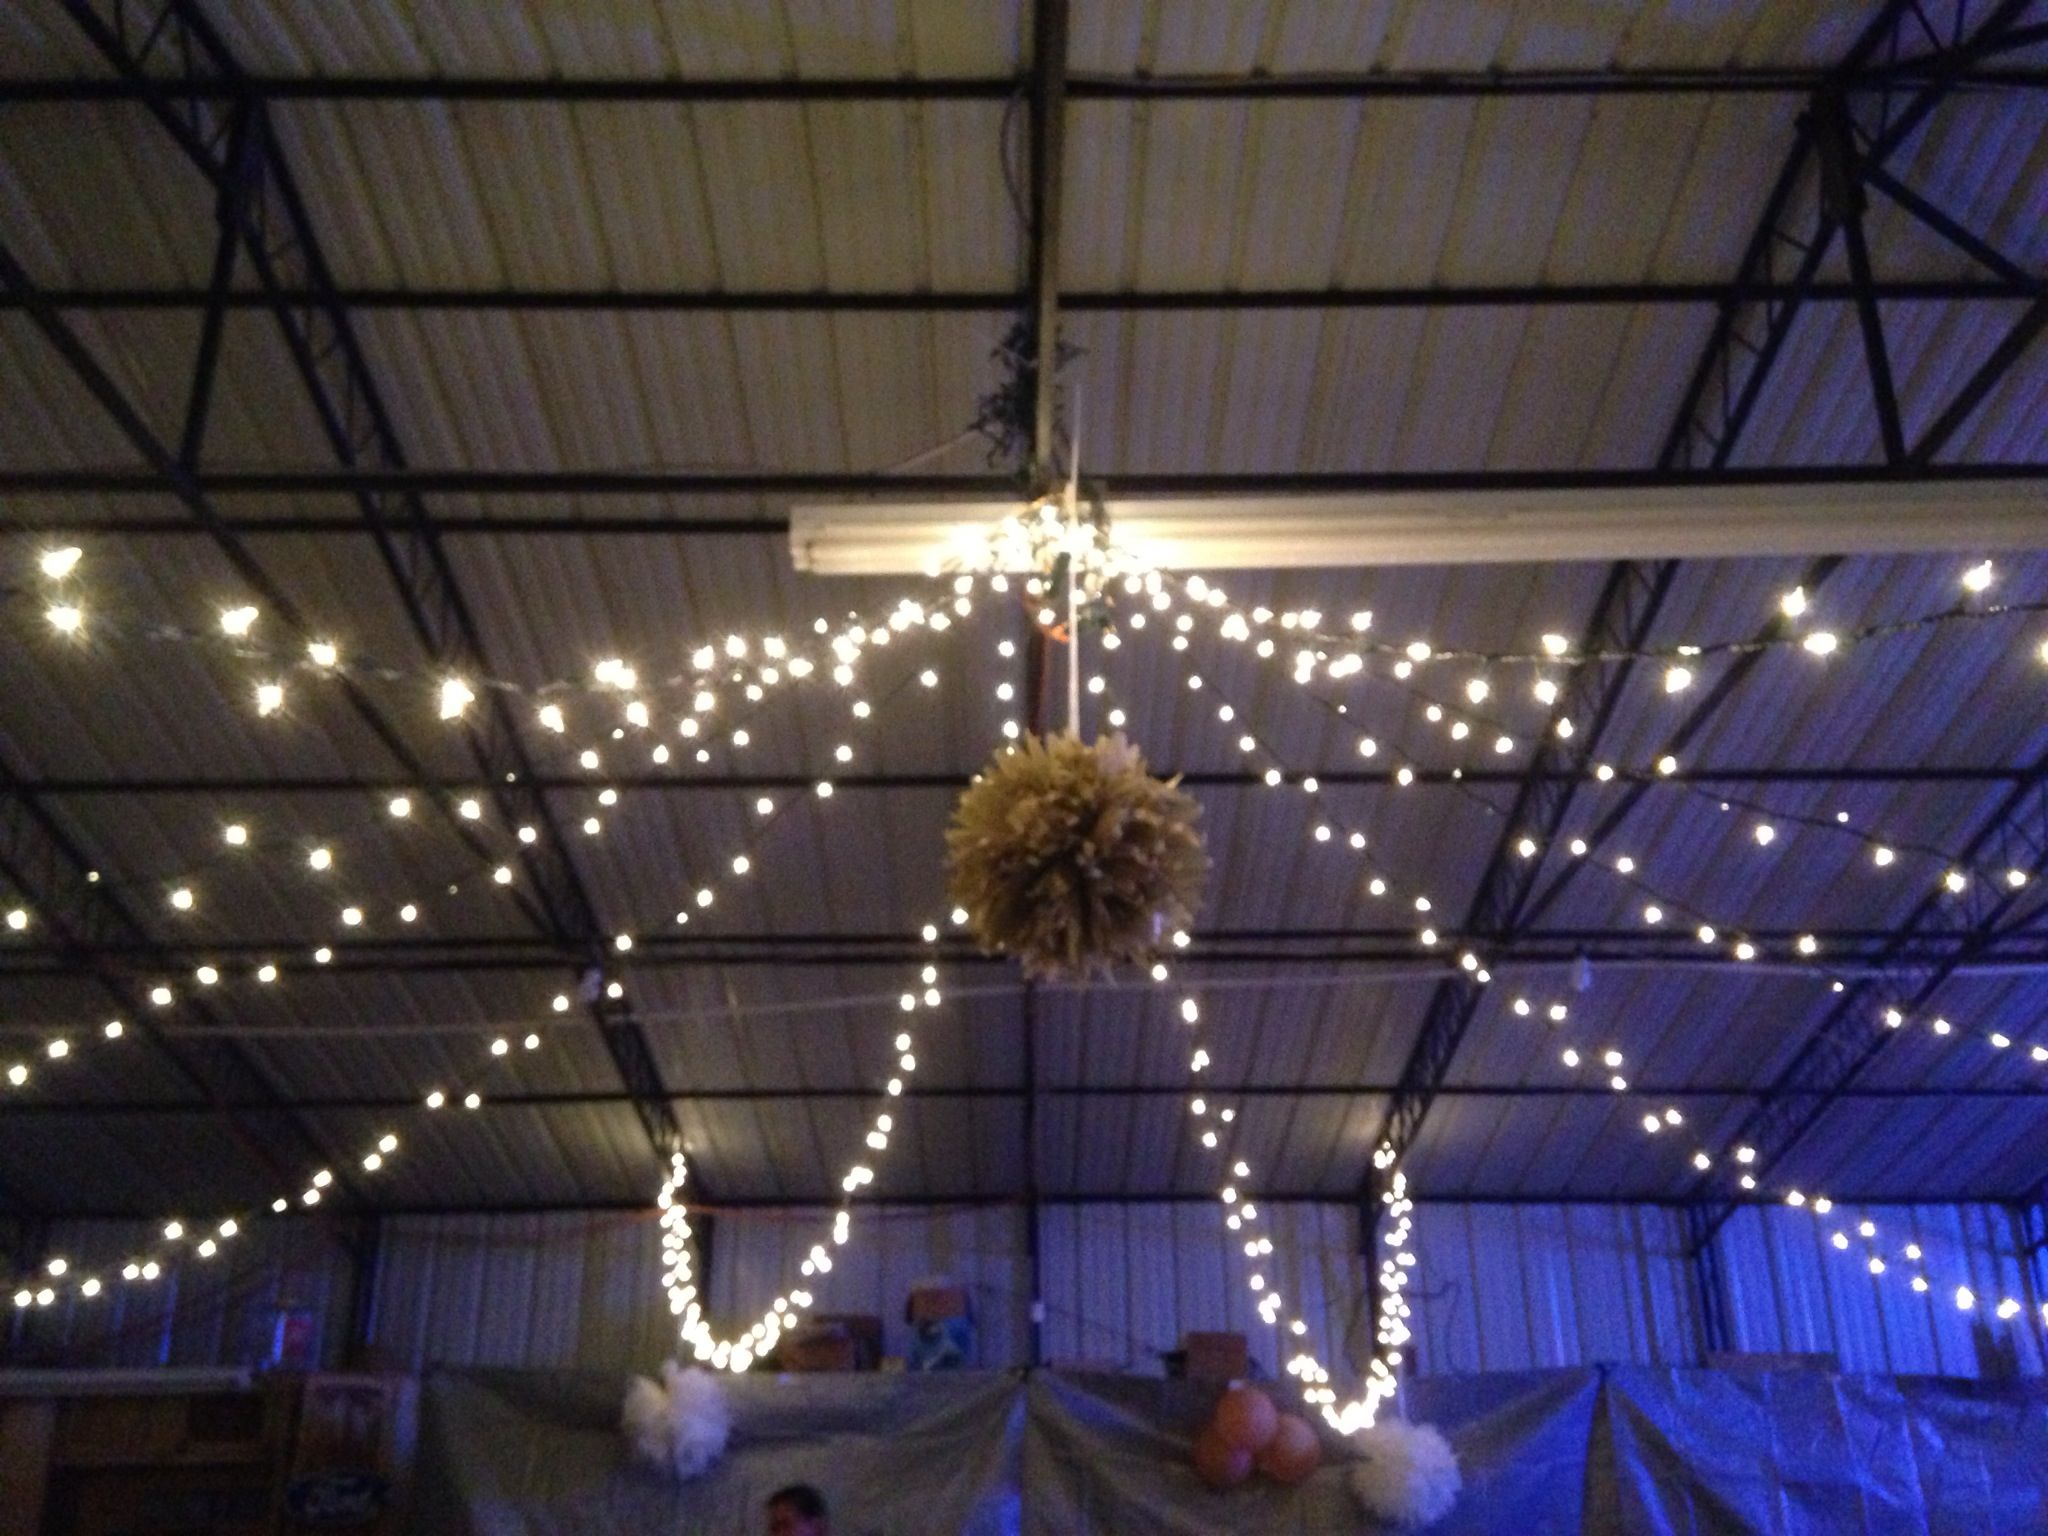 Best barn party decorations ideas on pinterest